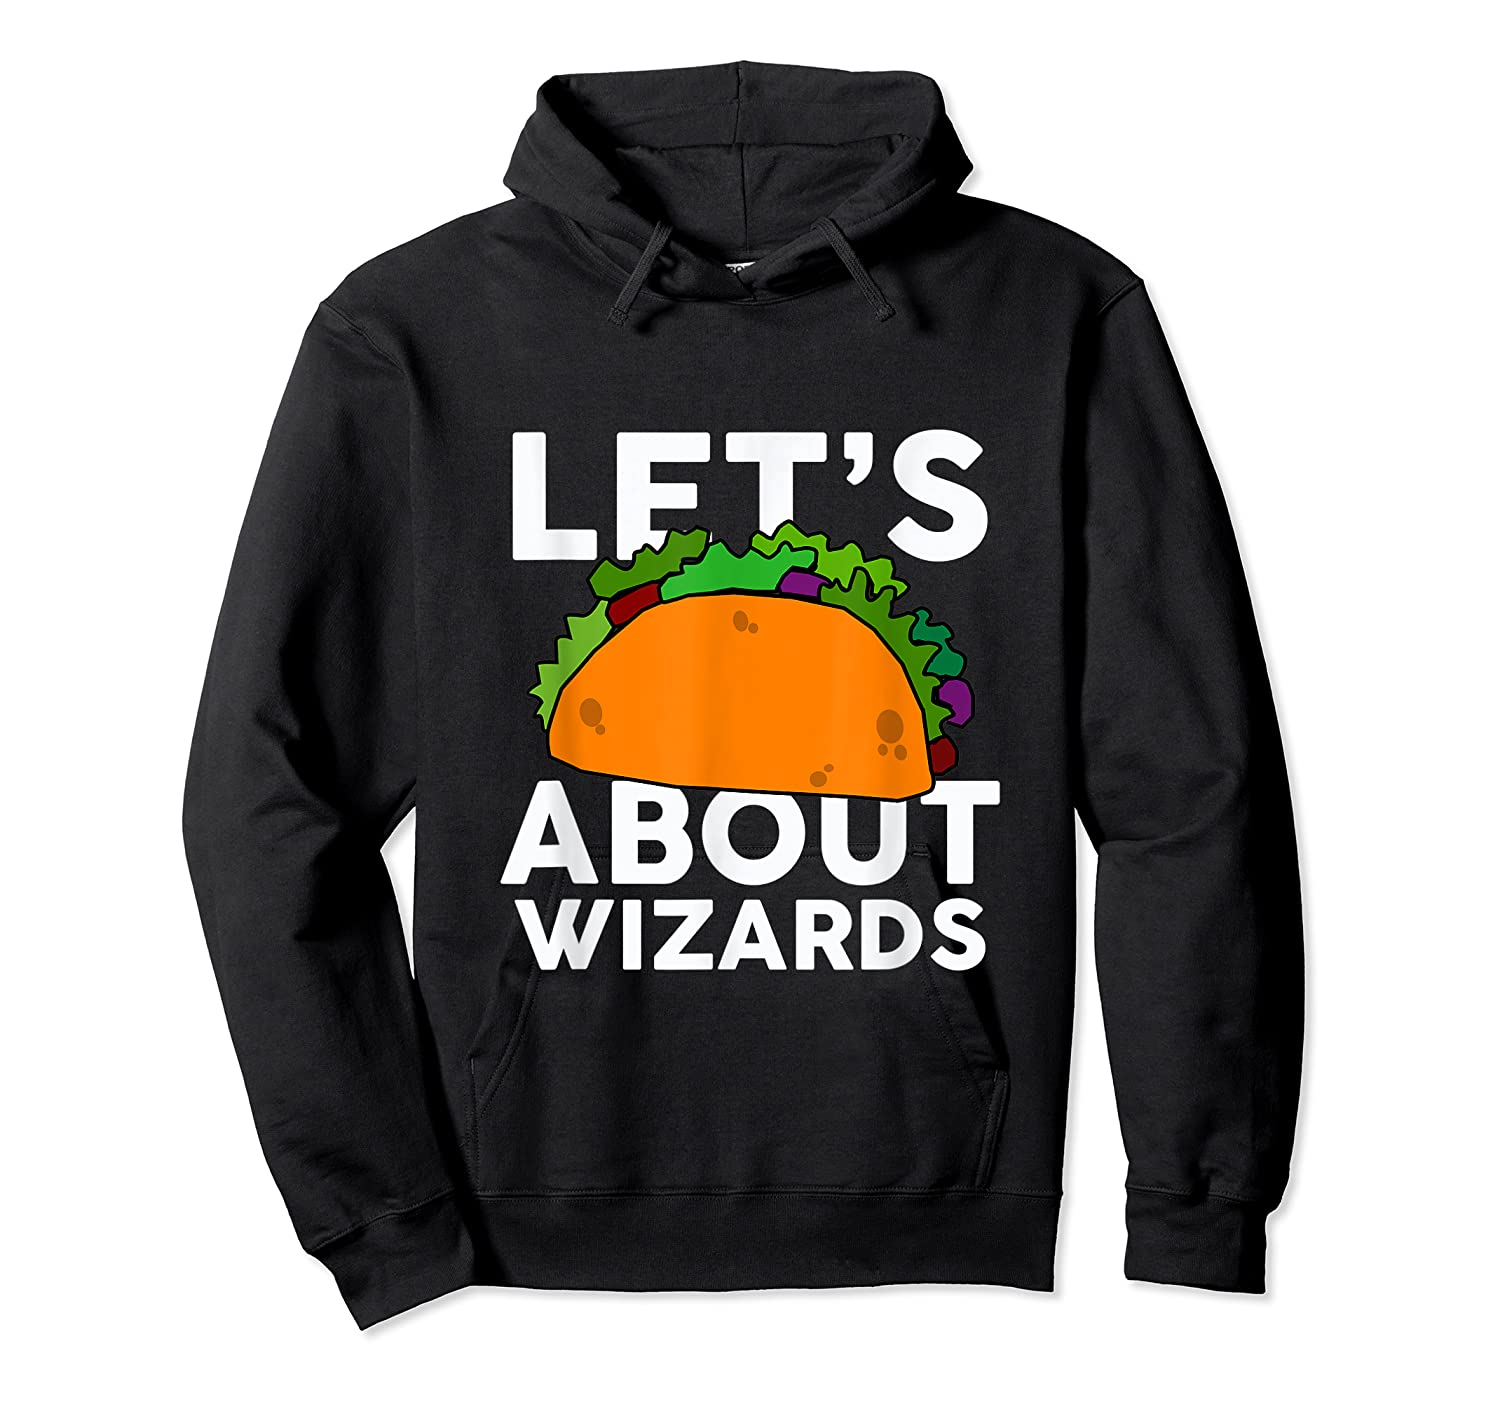 Let's Taco About Wizards T-shirt Halloween Costume Shirt T-shirt Unisex Pullover Hoodie